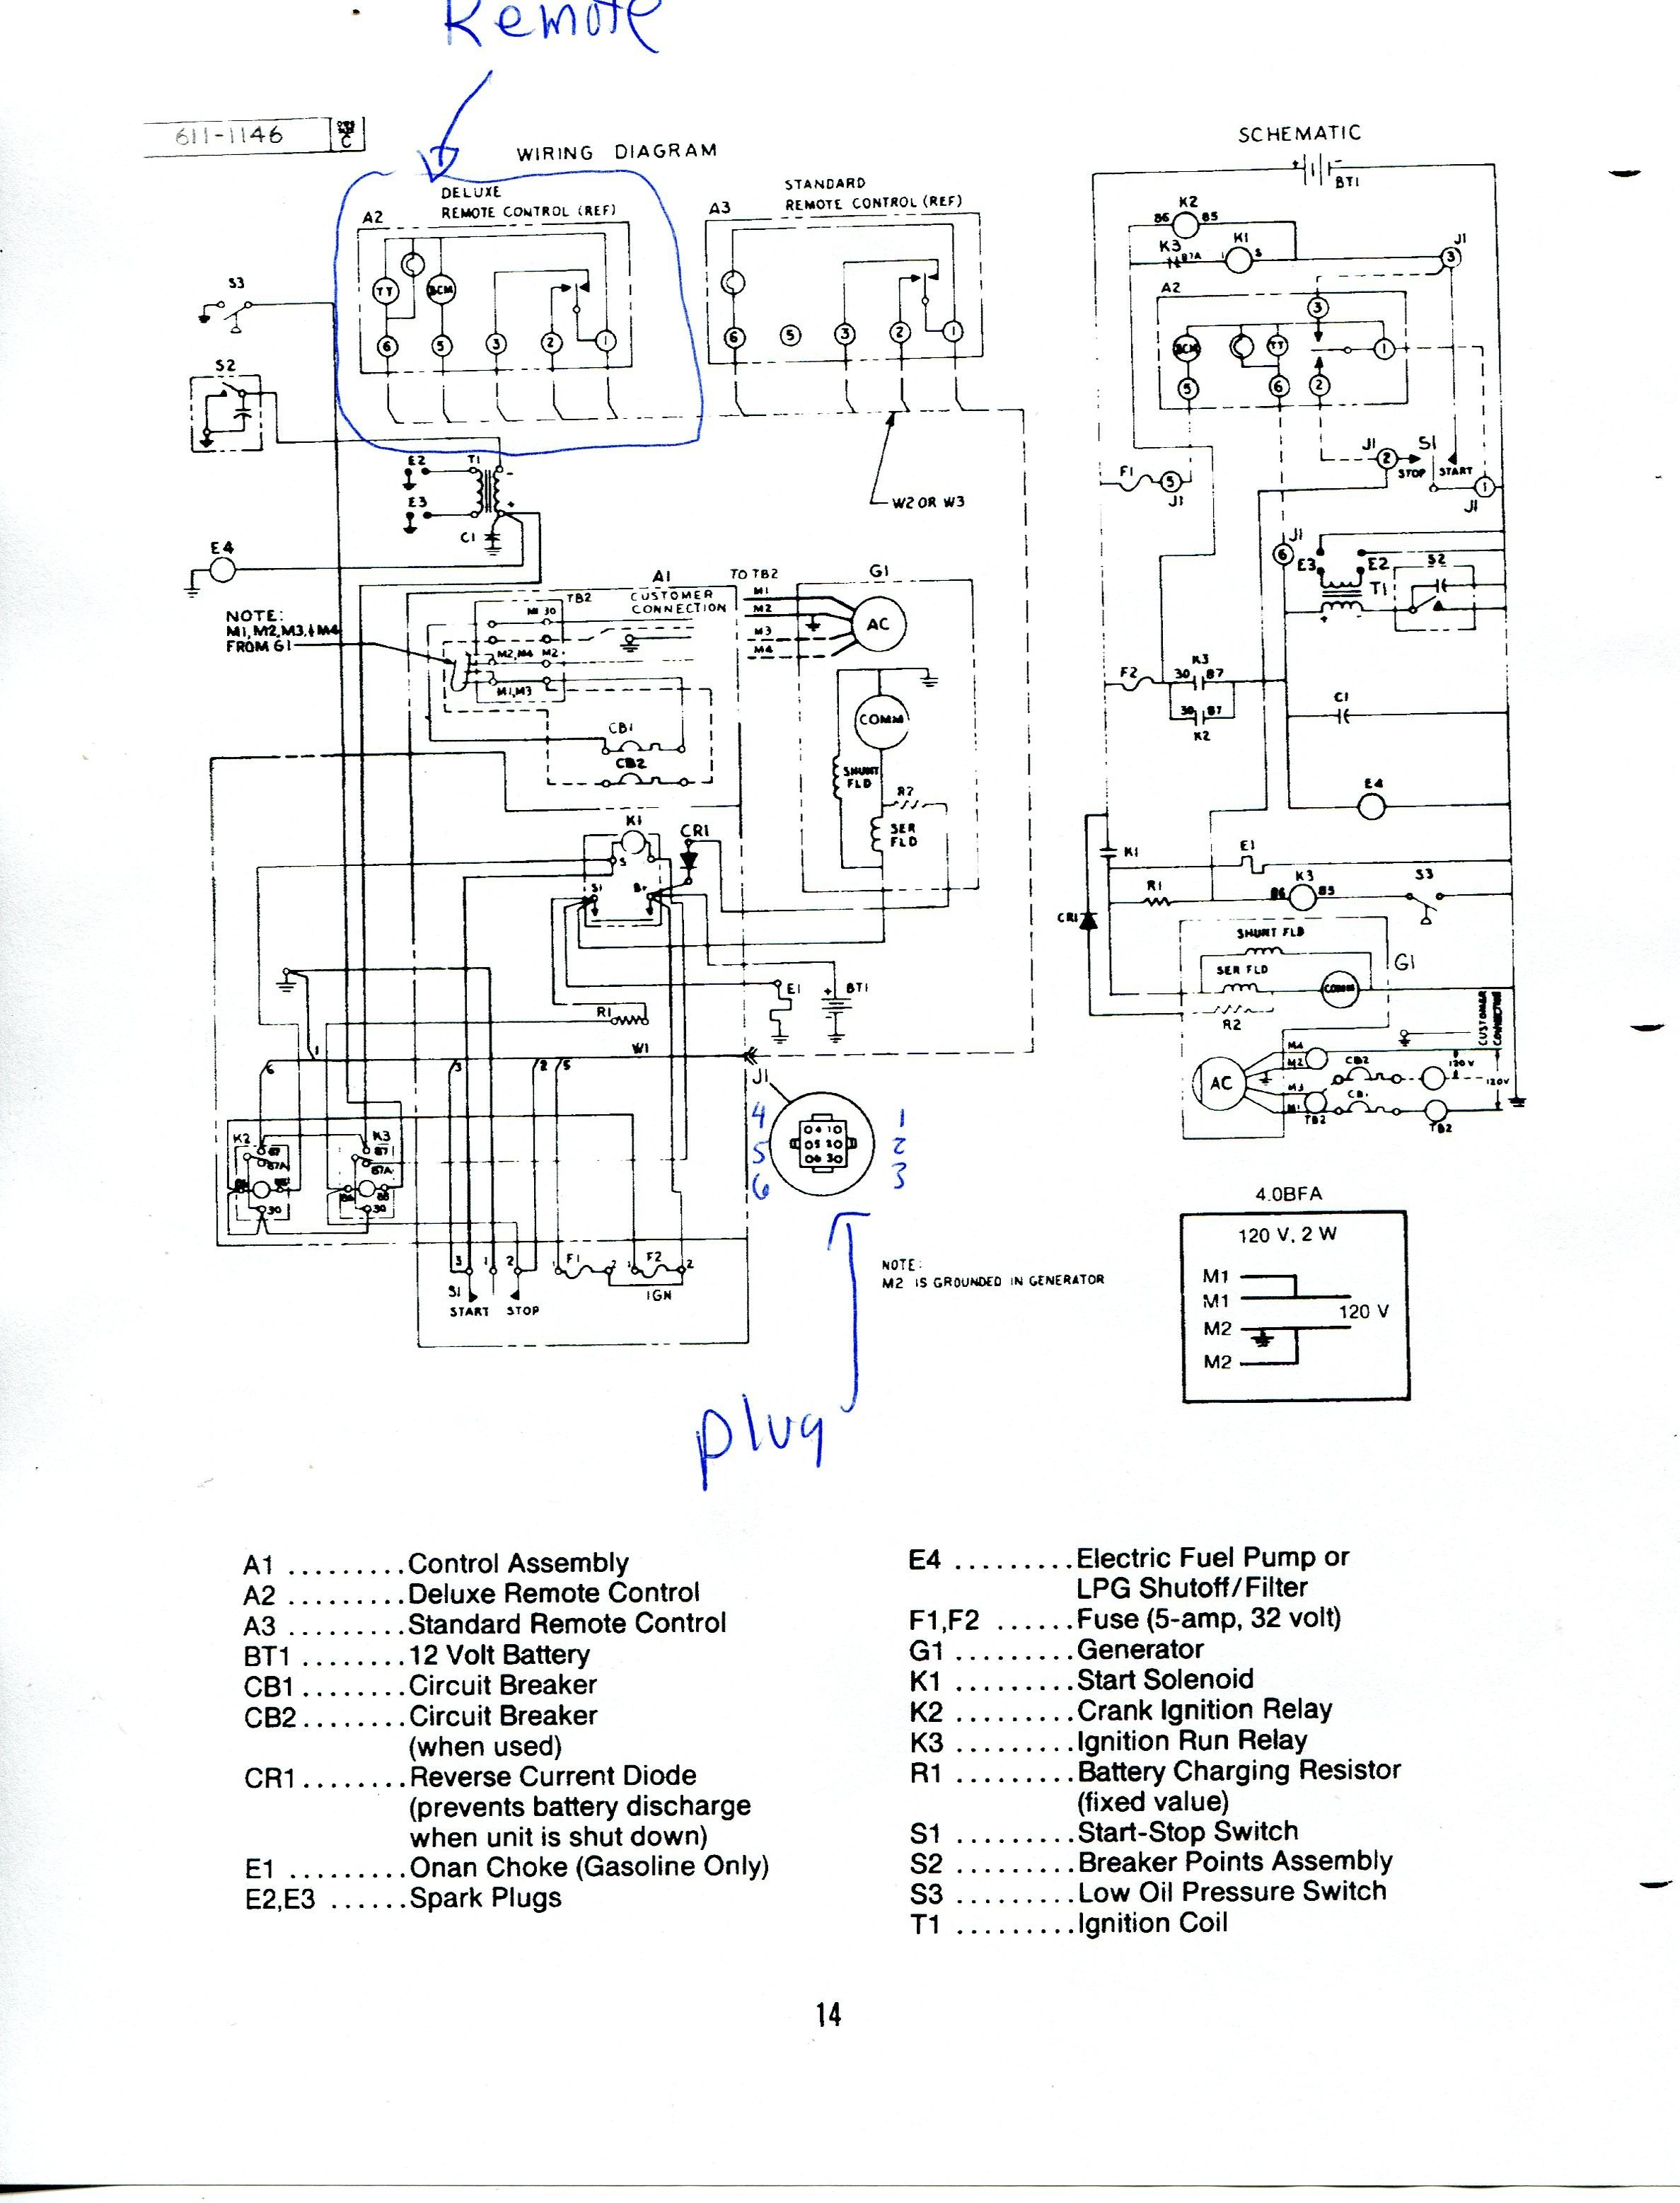 onan generator wiring diagram Download-Wiring Diagram an Generator Valid Wiring Diagram An Generator Valid Luxury An Generator Electric 8-m